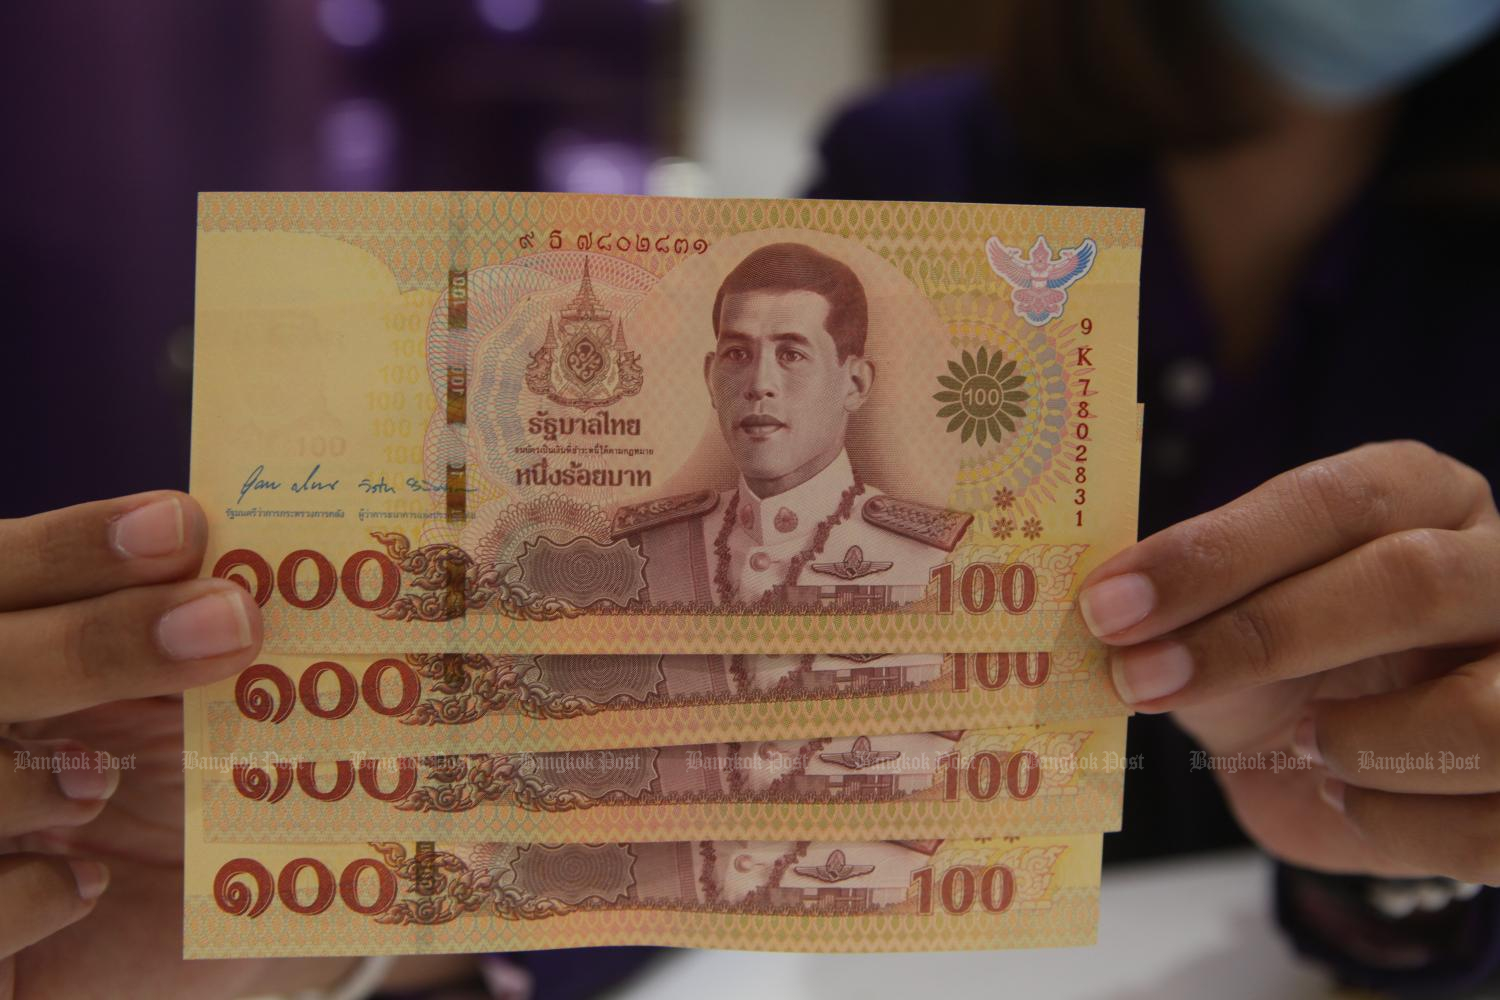 Commemorative banknotes marking the Royal Coronation Ceremony of 2019 make their debut on Saturday. The set comprises 1,000-baht and 100-baht notes.